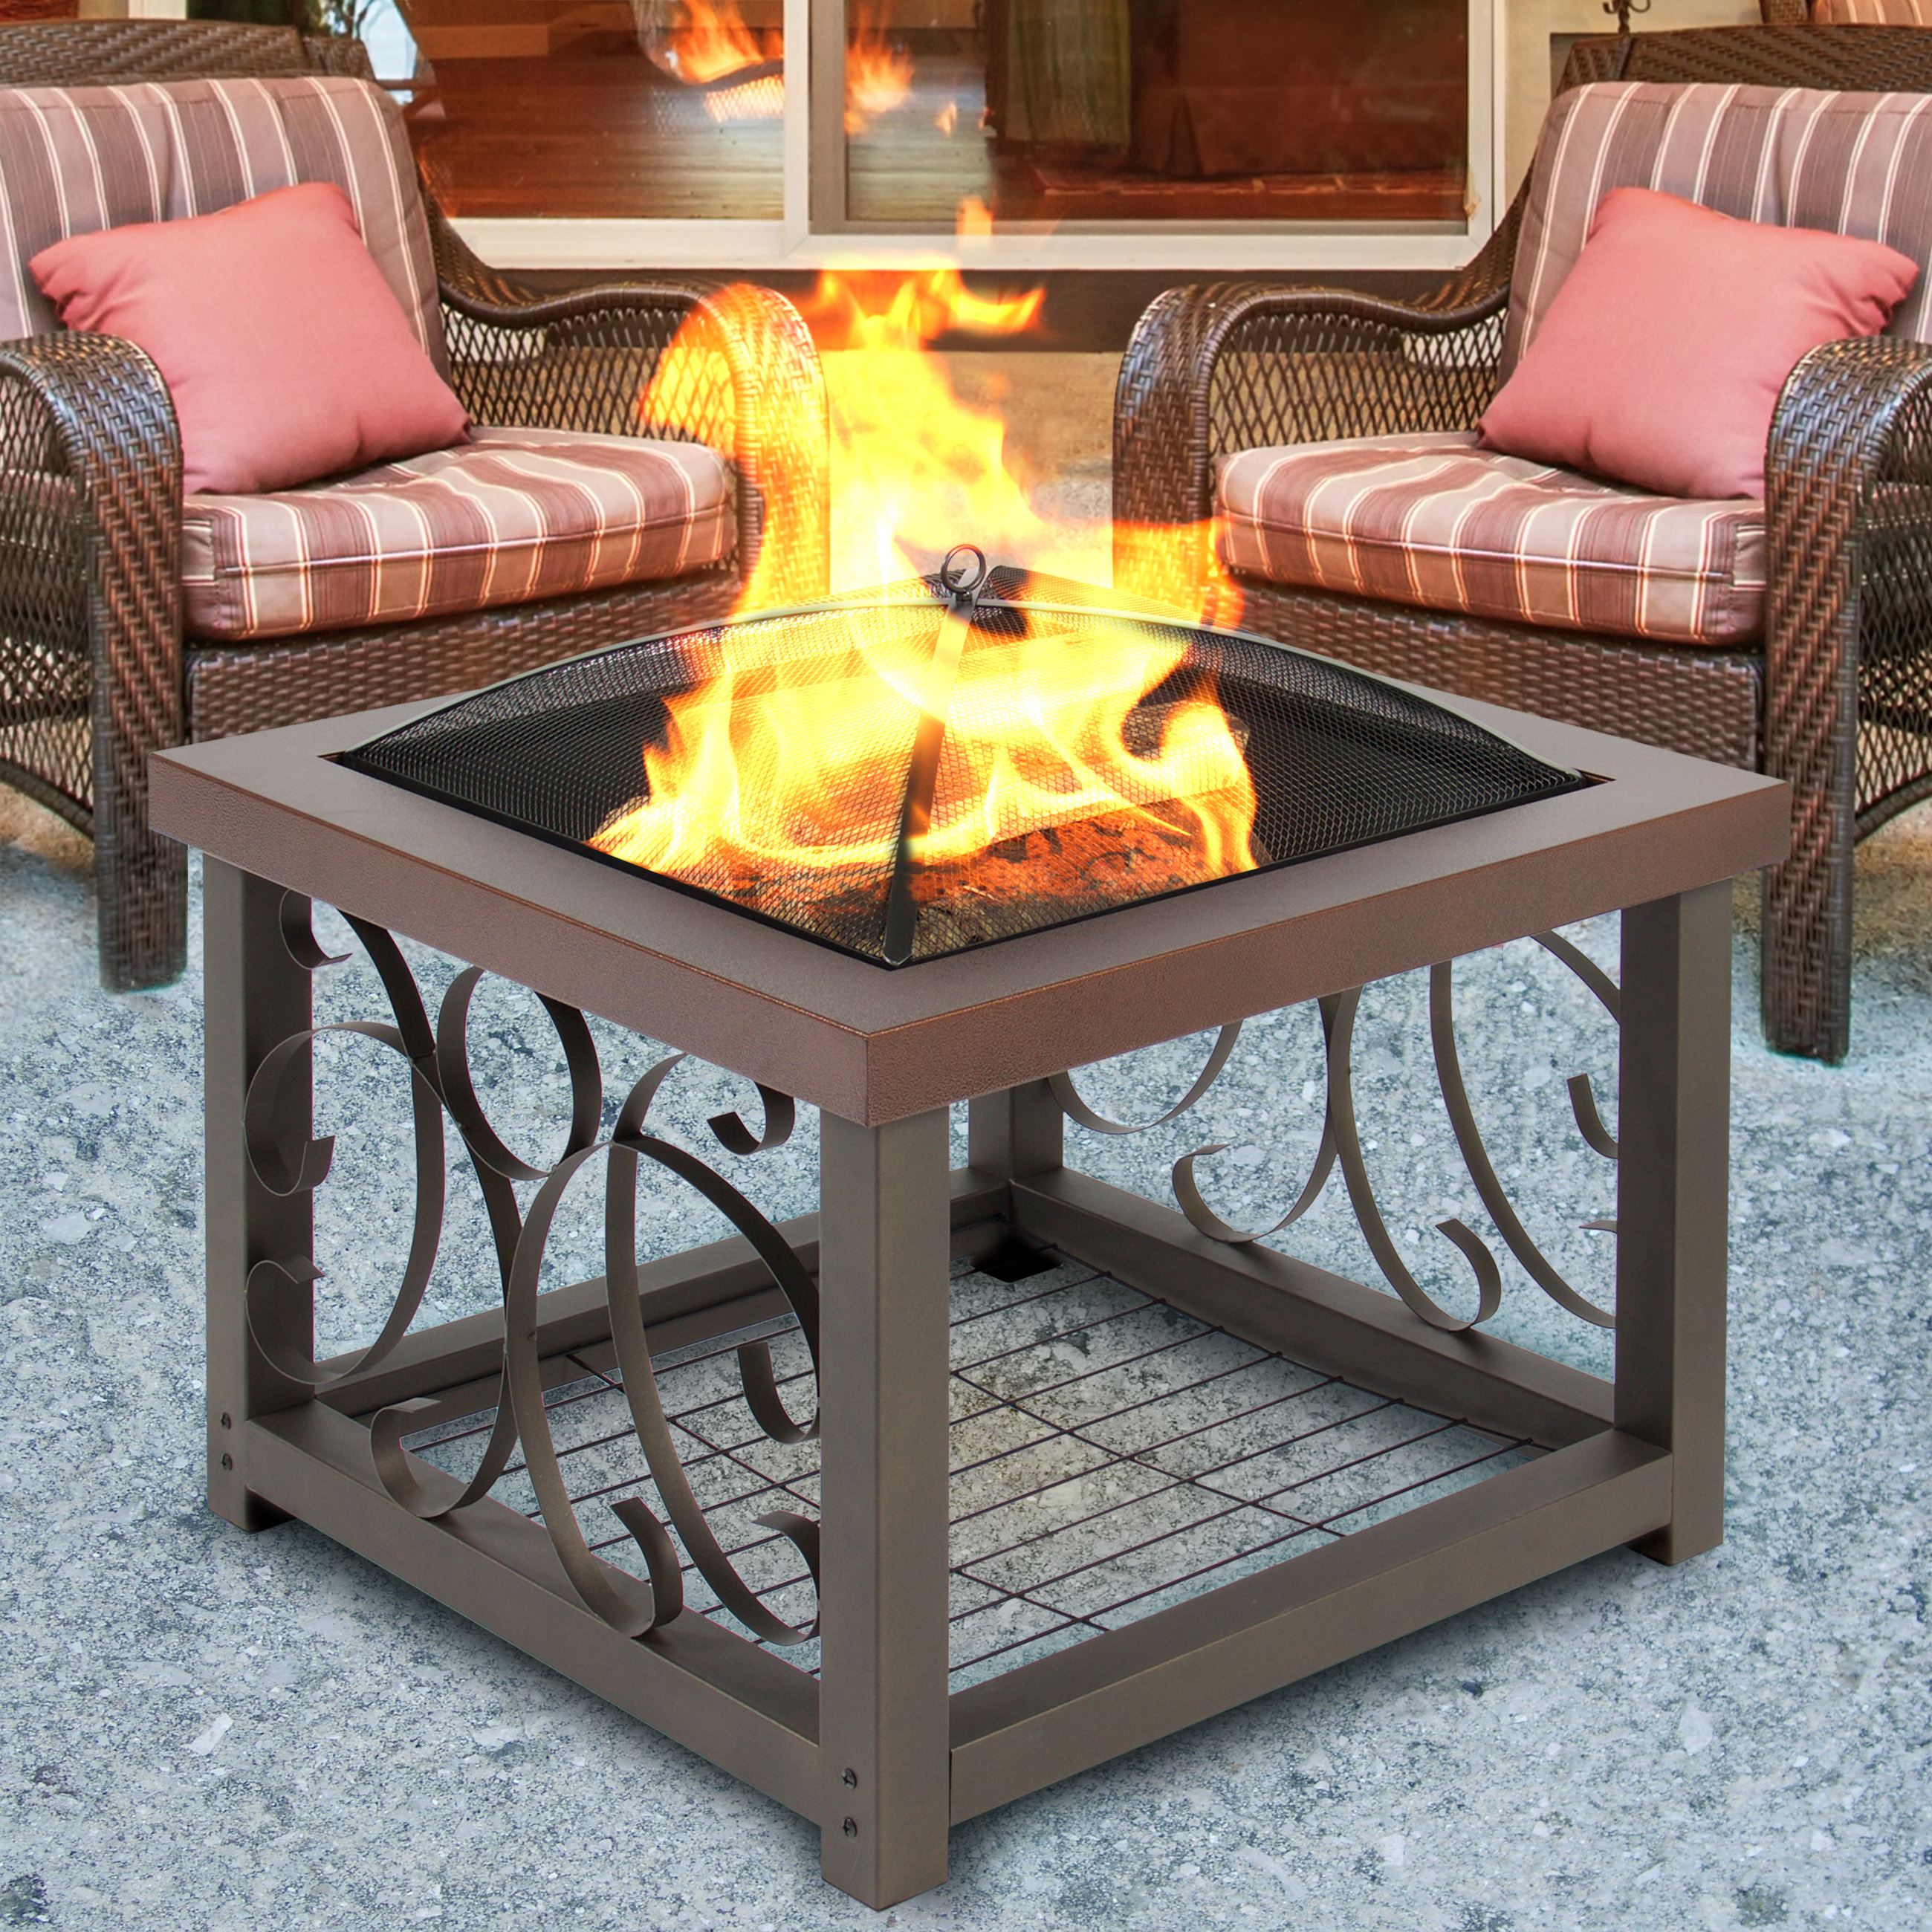 Attirant Best Choice Products Outdoor Fire Pit Table Firepit Patio Garden Stove  Fireplace